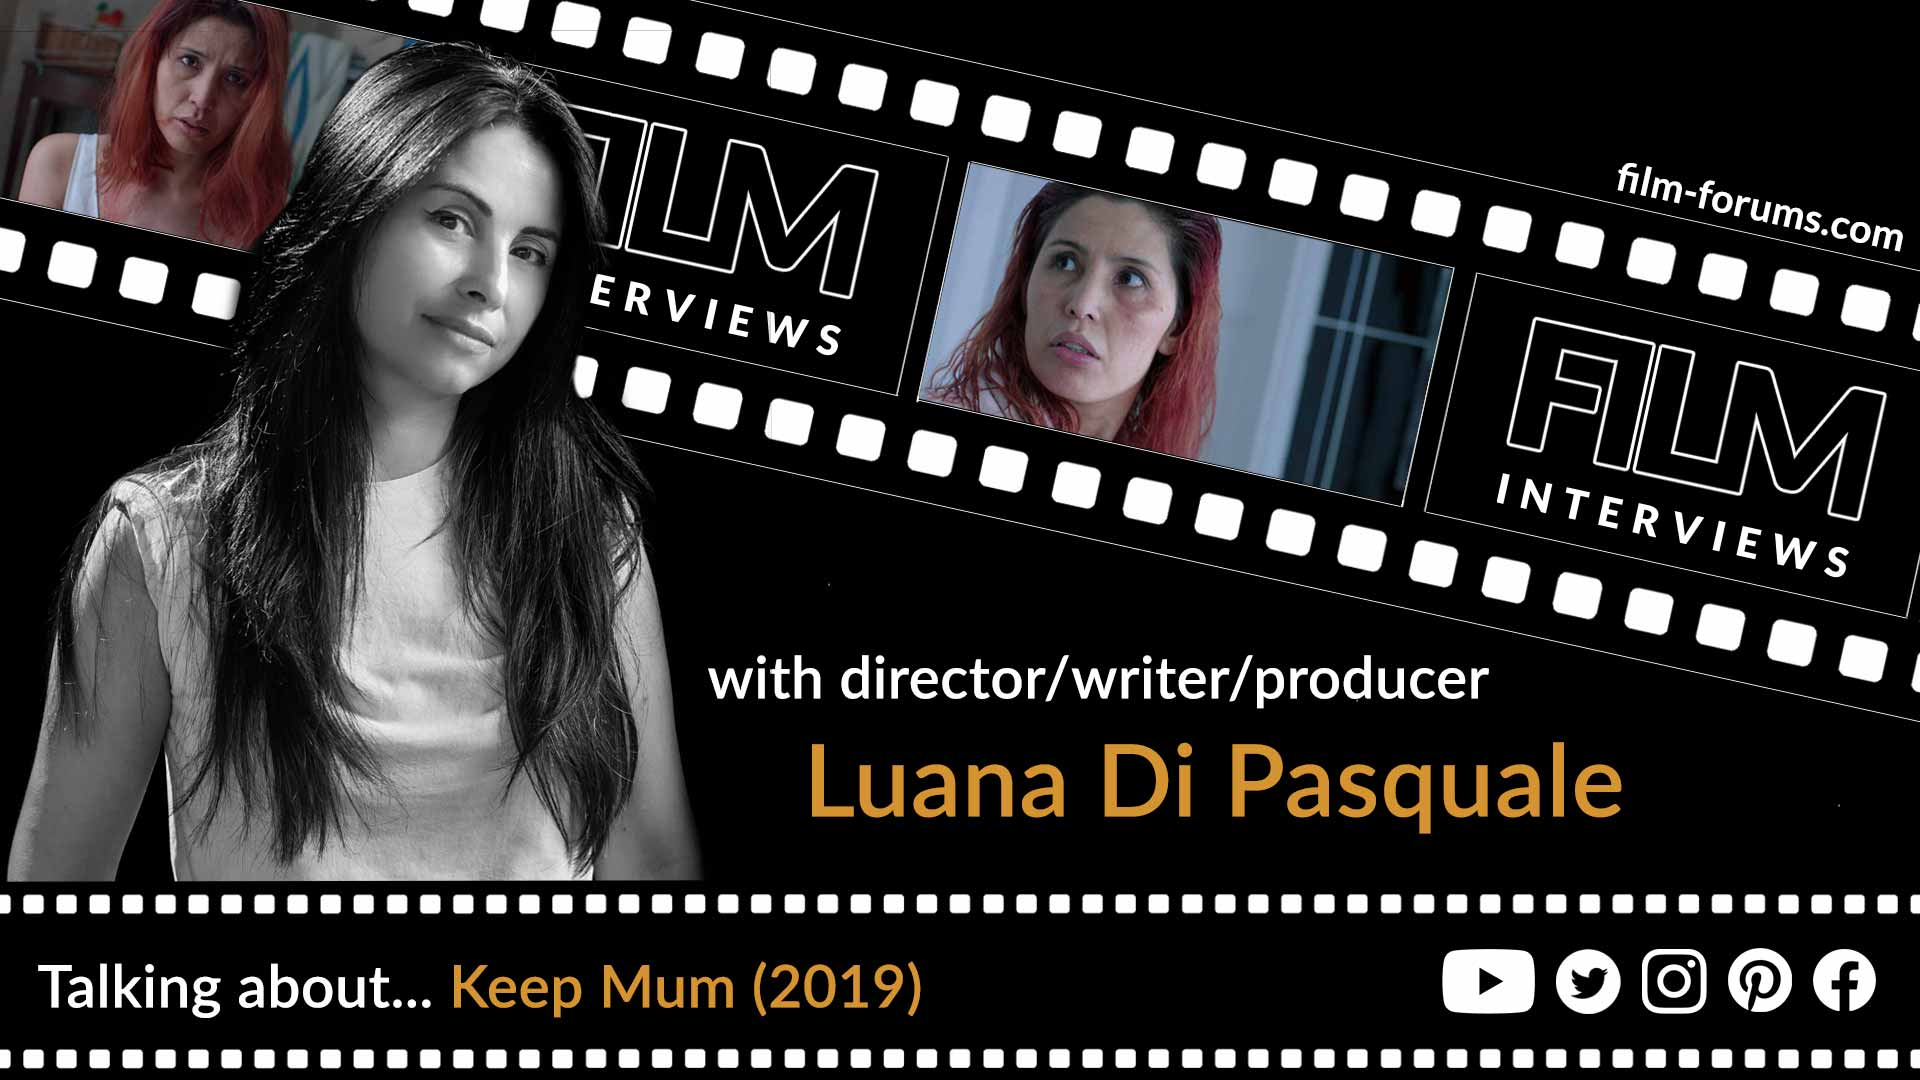 Interview with director, writer and producer Luana Di Pasquale